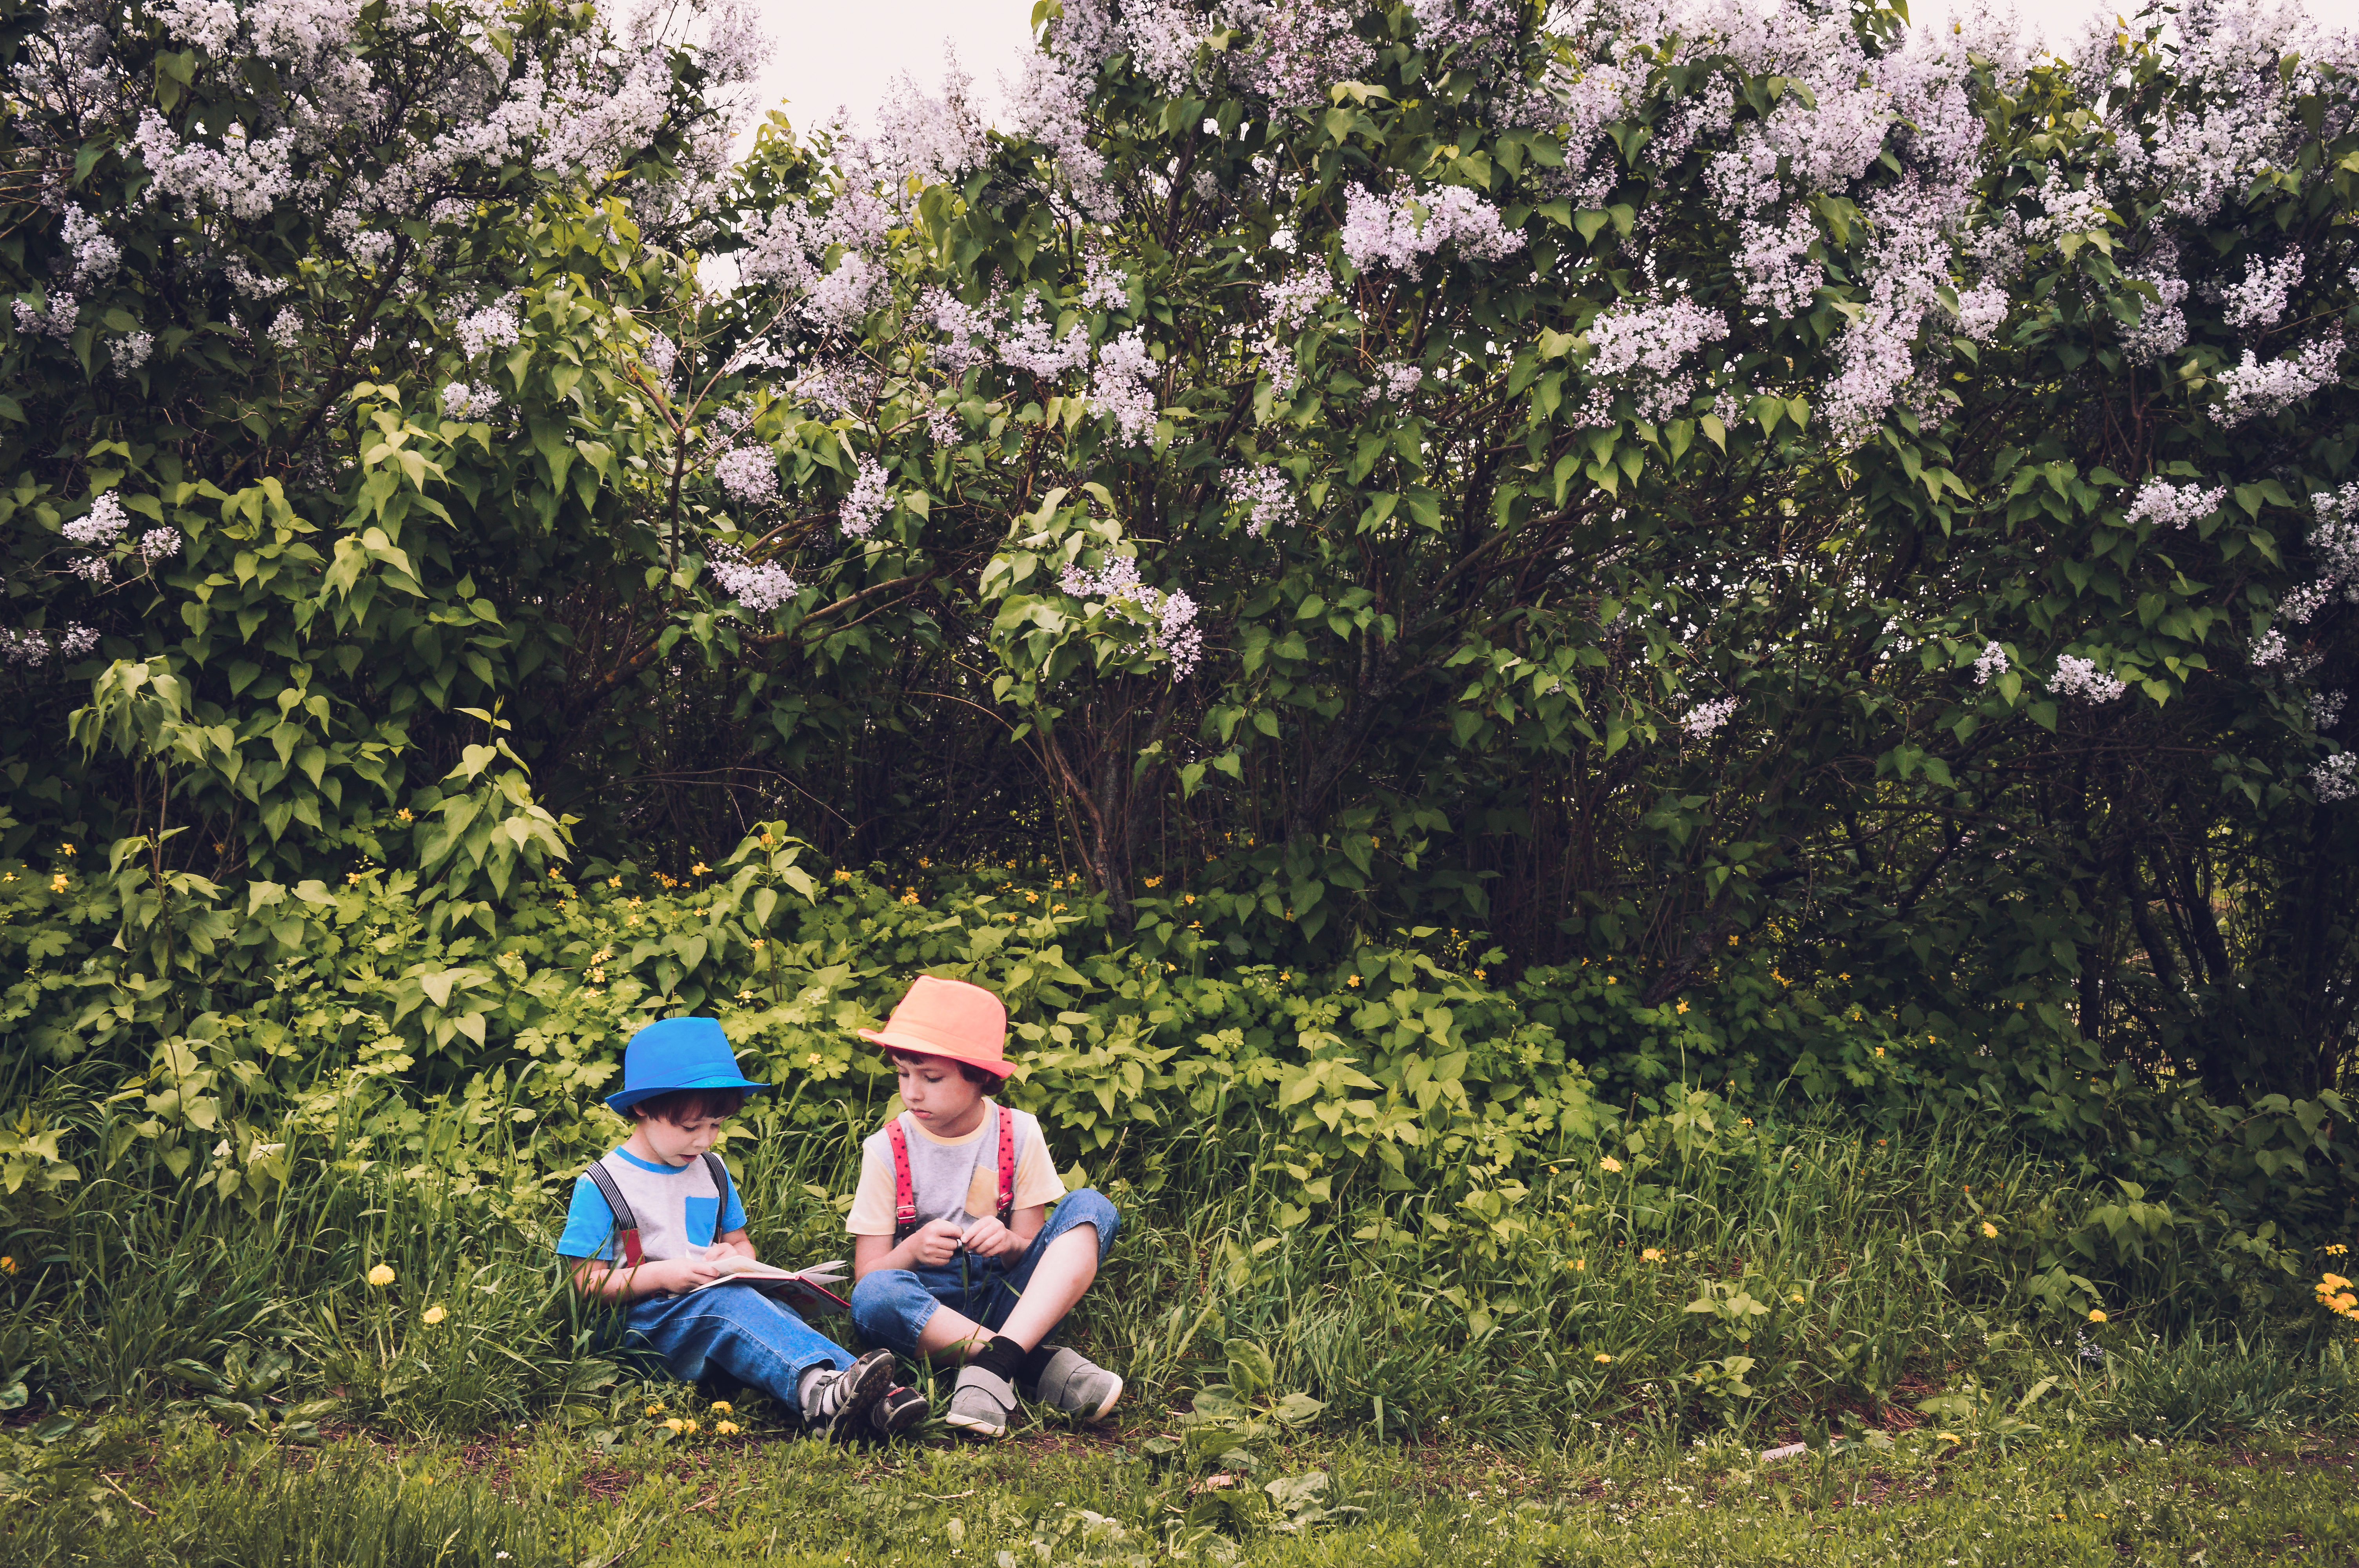 New Wallpaper Hd Boy And Girl Girl And Boy Sitting On Grass Field Surrounded By Trees